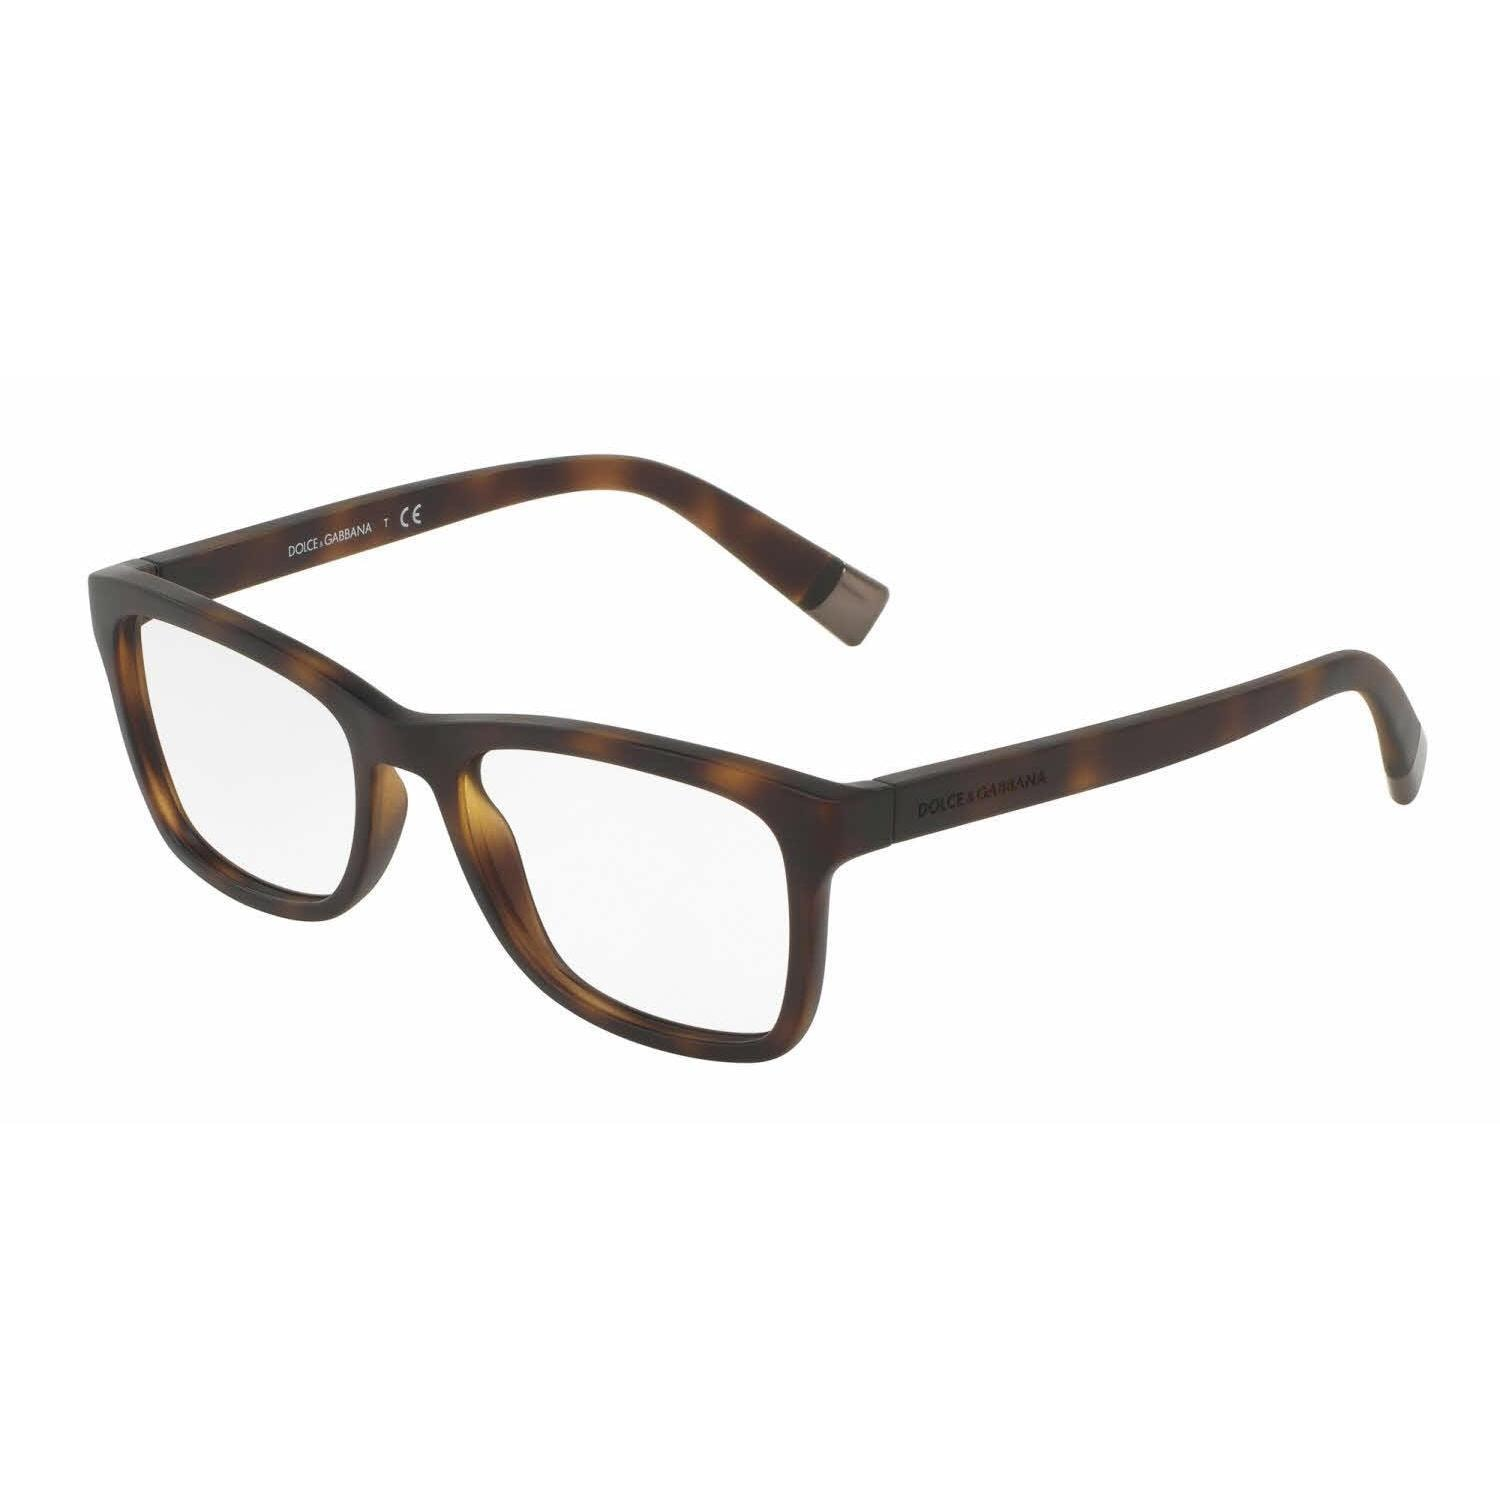 a4a8839534 Dolce And Gabbana Semi Rimless Eyeglasses « One More Soul